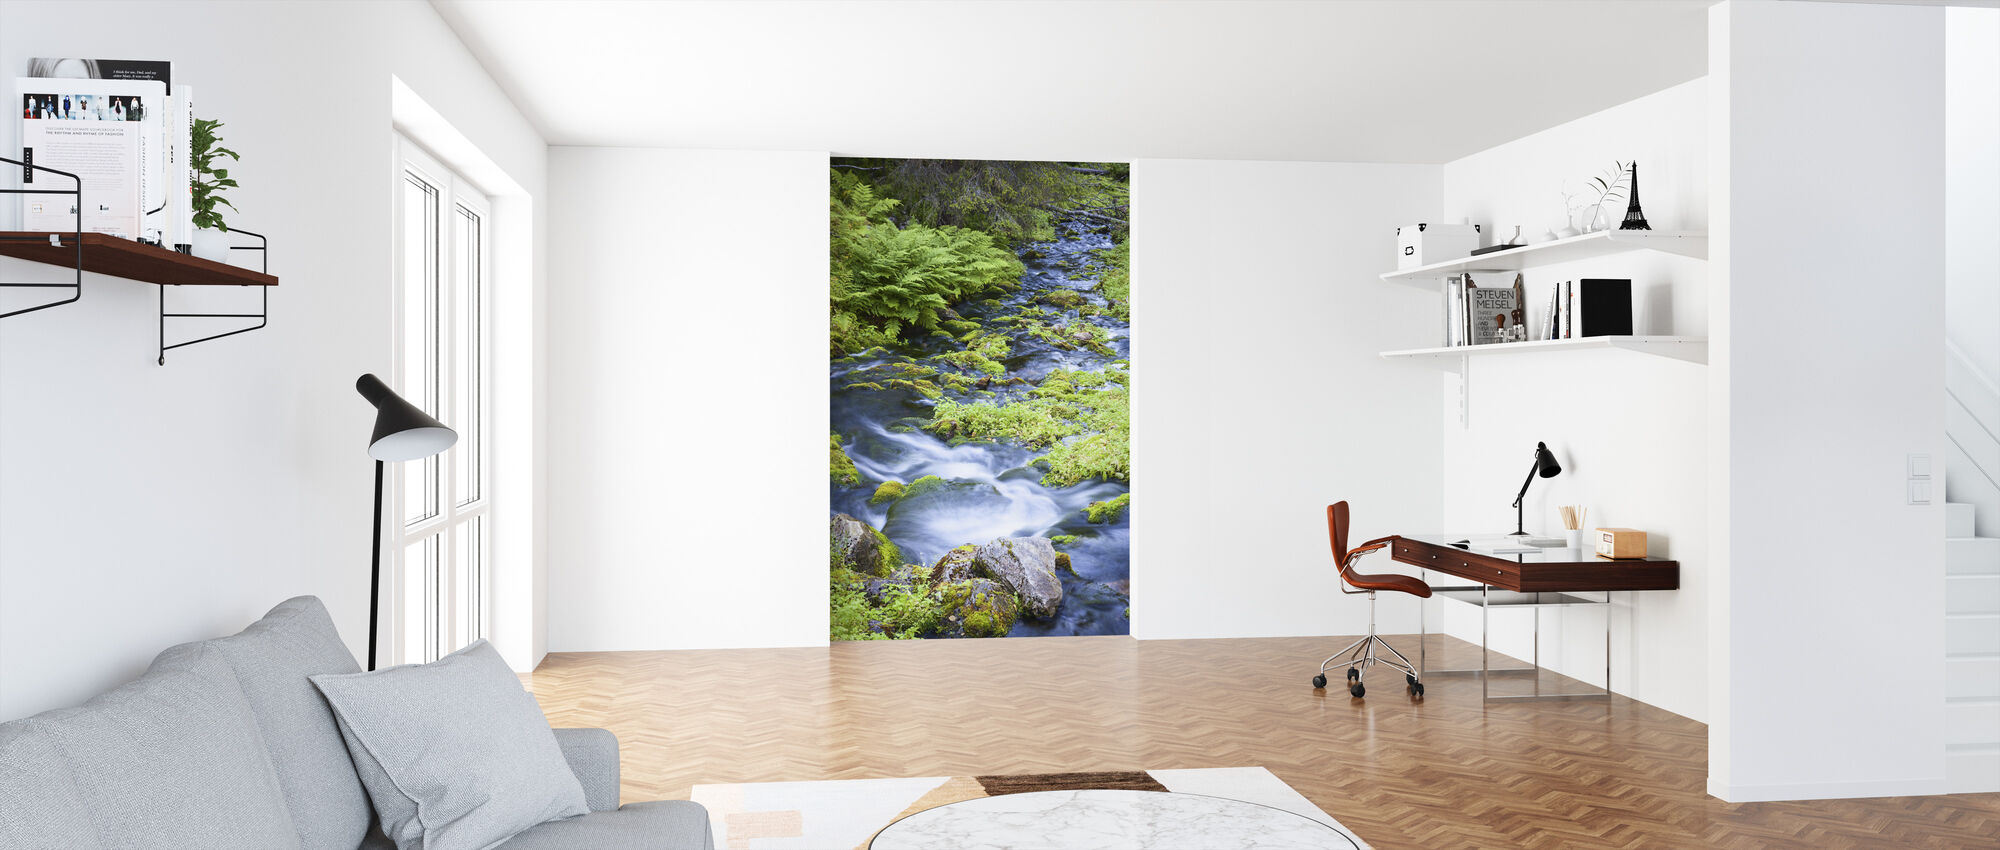 Finnish Brook - Wallpaper - Office